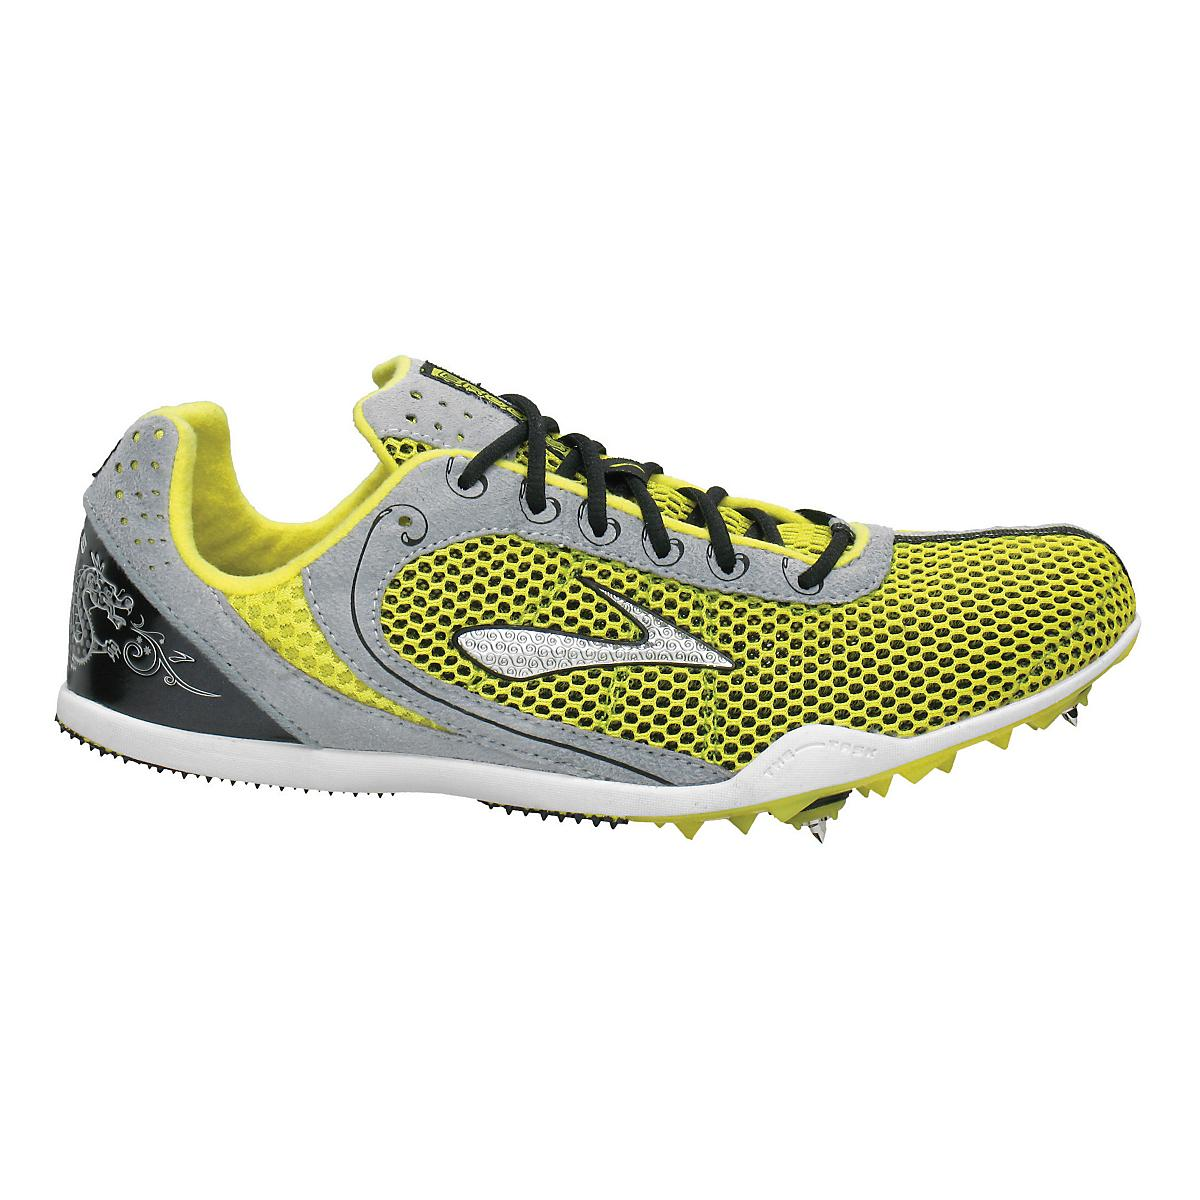 a98d5e7c3f9 Brooks The Wire Track and Field Shoe at Road Runner Sports